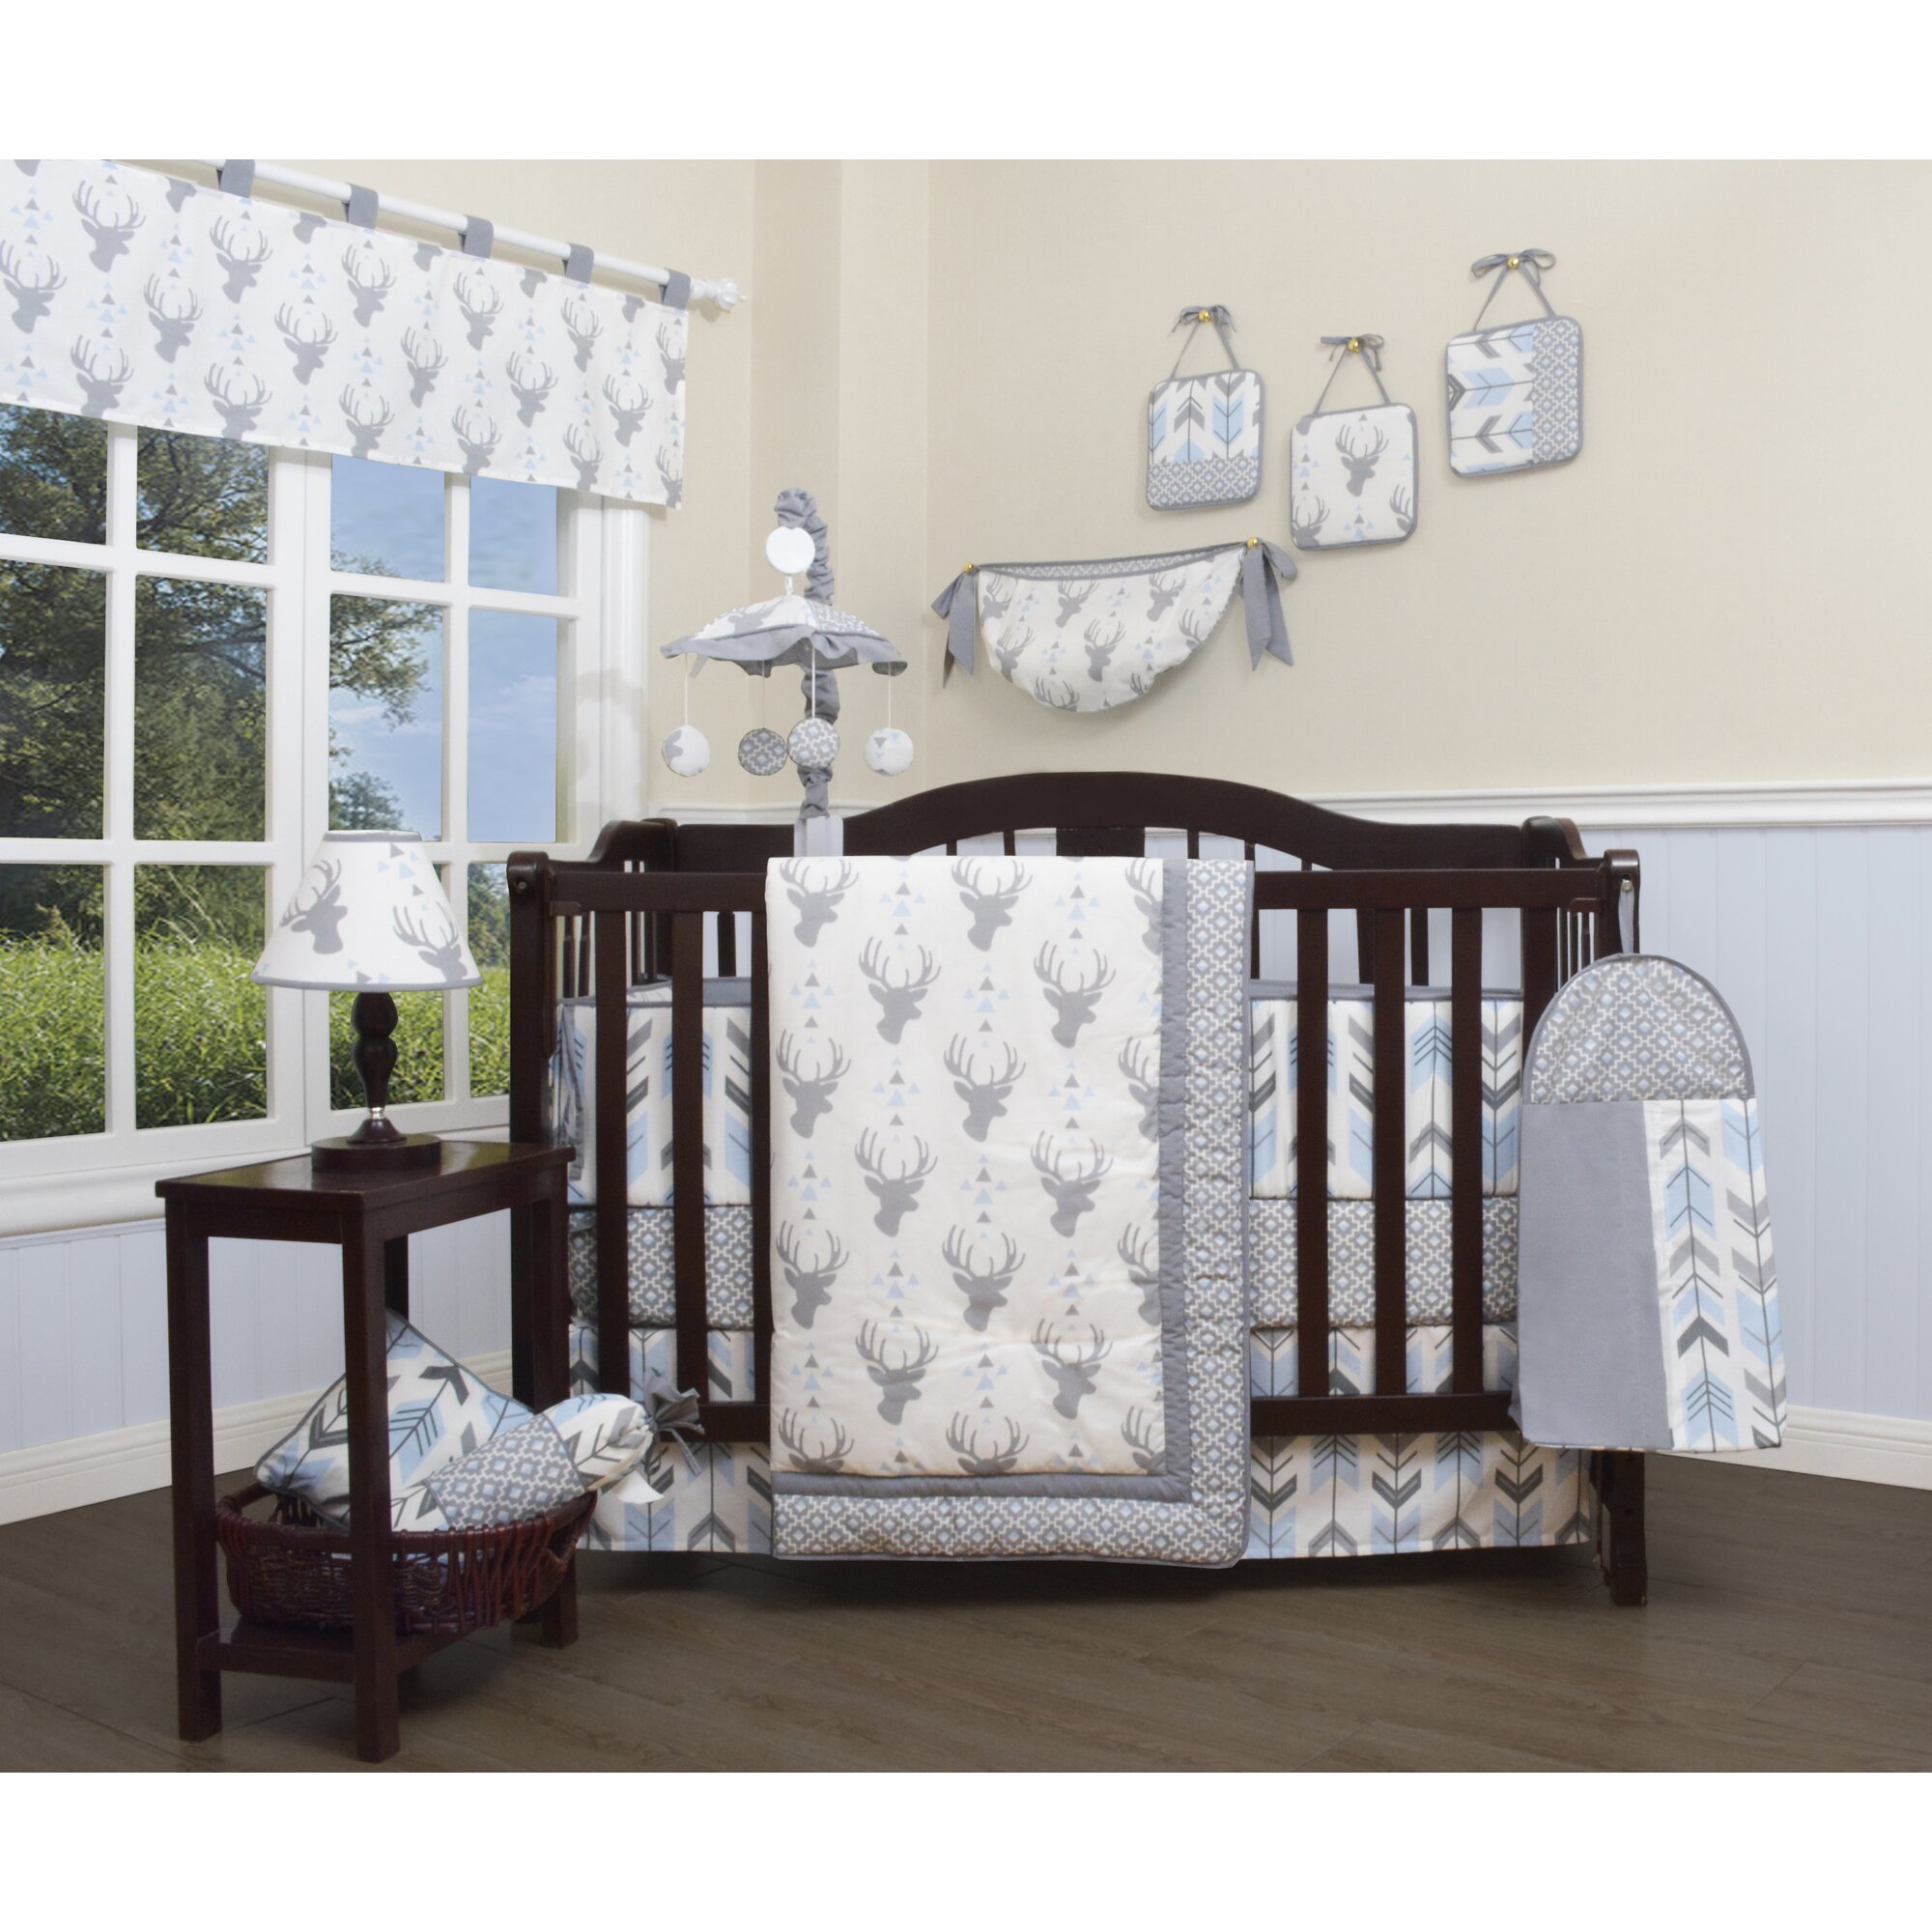 Harriet Bee Rollins 3 Piece Crib Bedding Set: Harriet Bee Jasmine Deer Nursery Arrow 13 Piece Crib